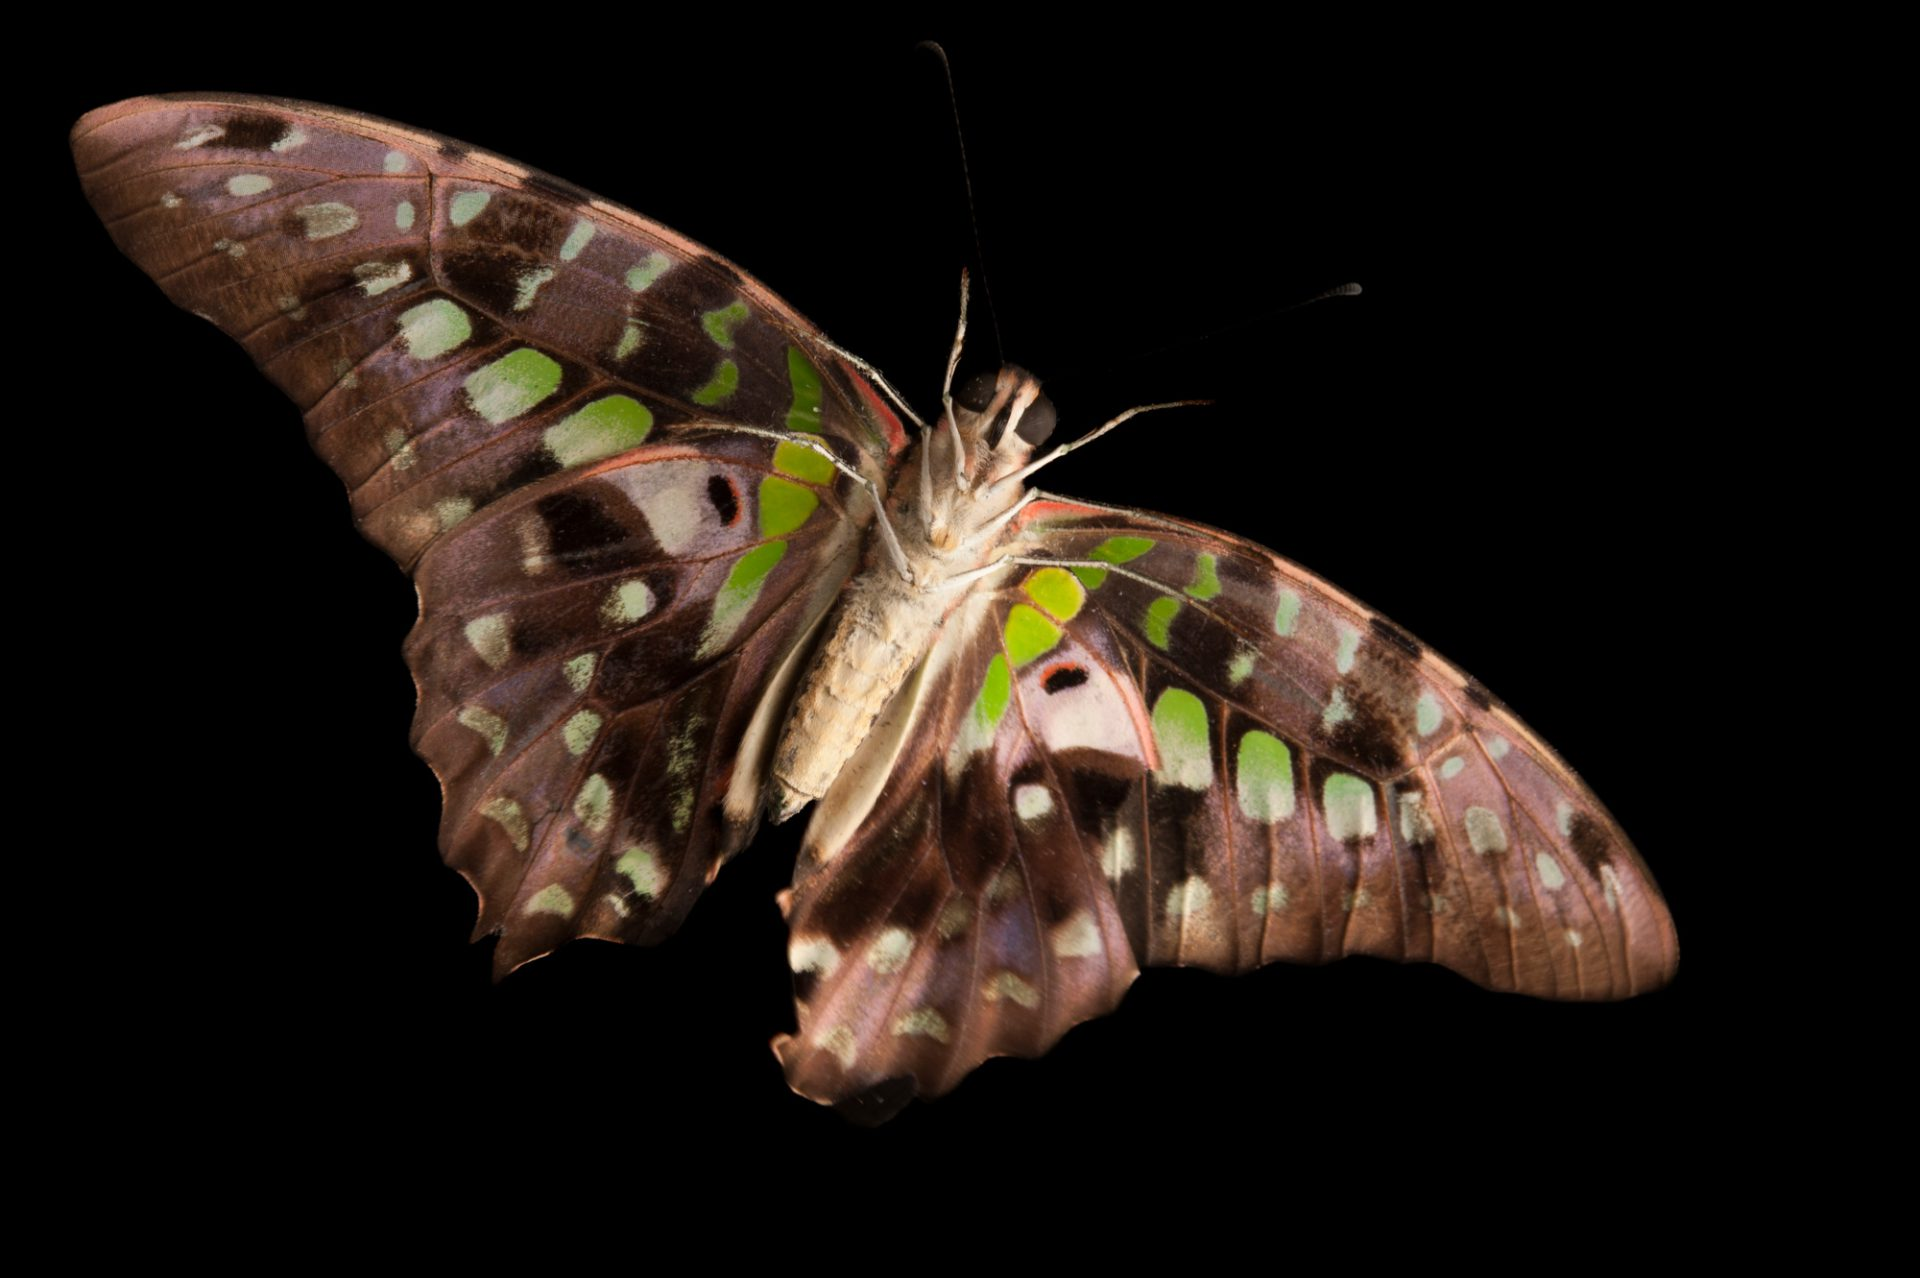 Photo: A tailed jay butterfly (Graphium agamemnon) at the Audubon Insectarium in New Orleans.